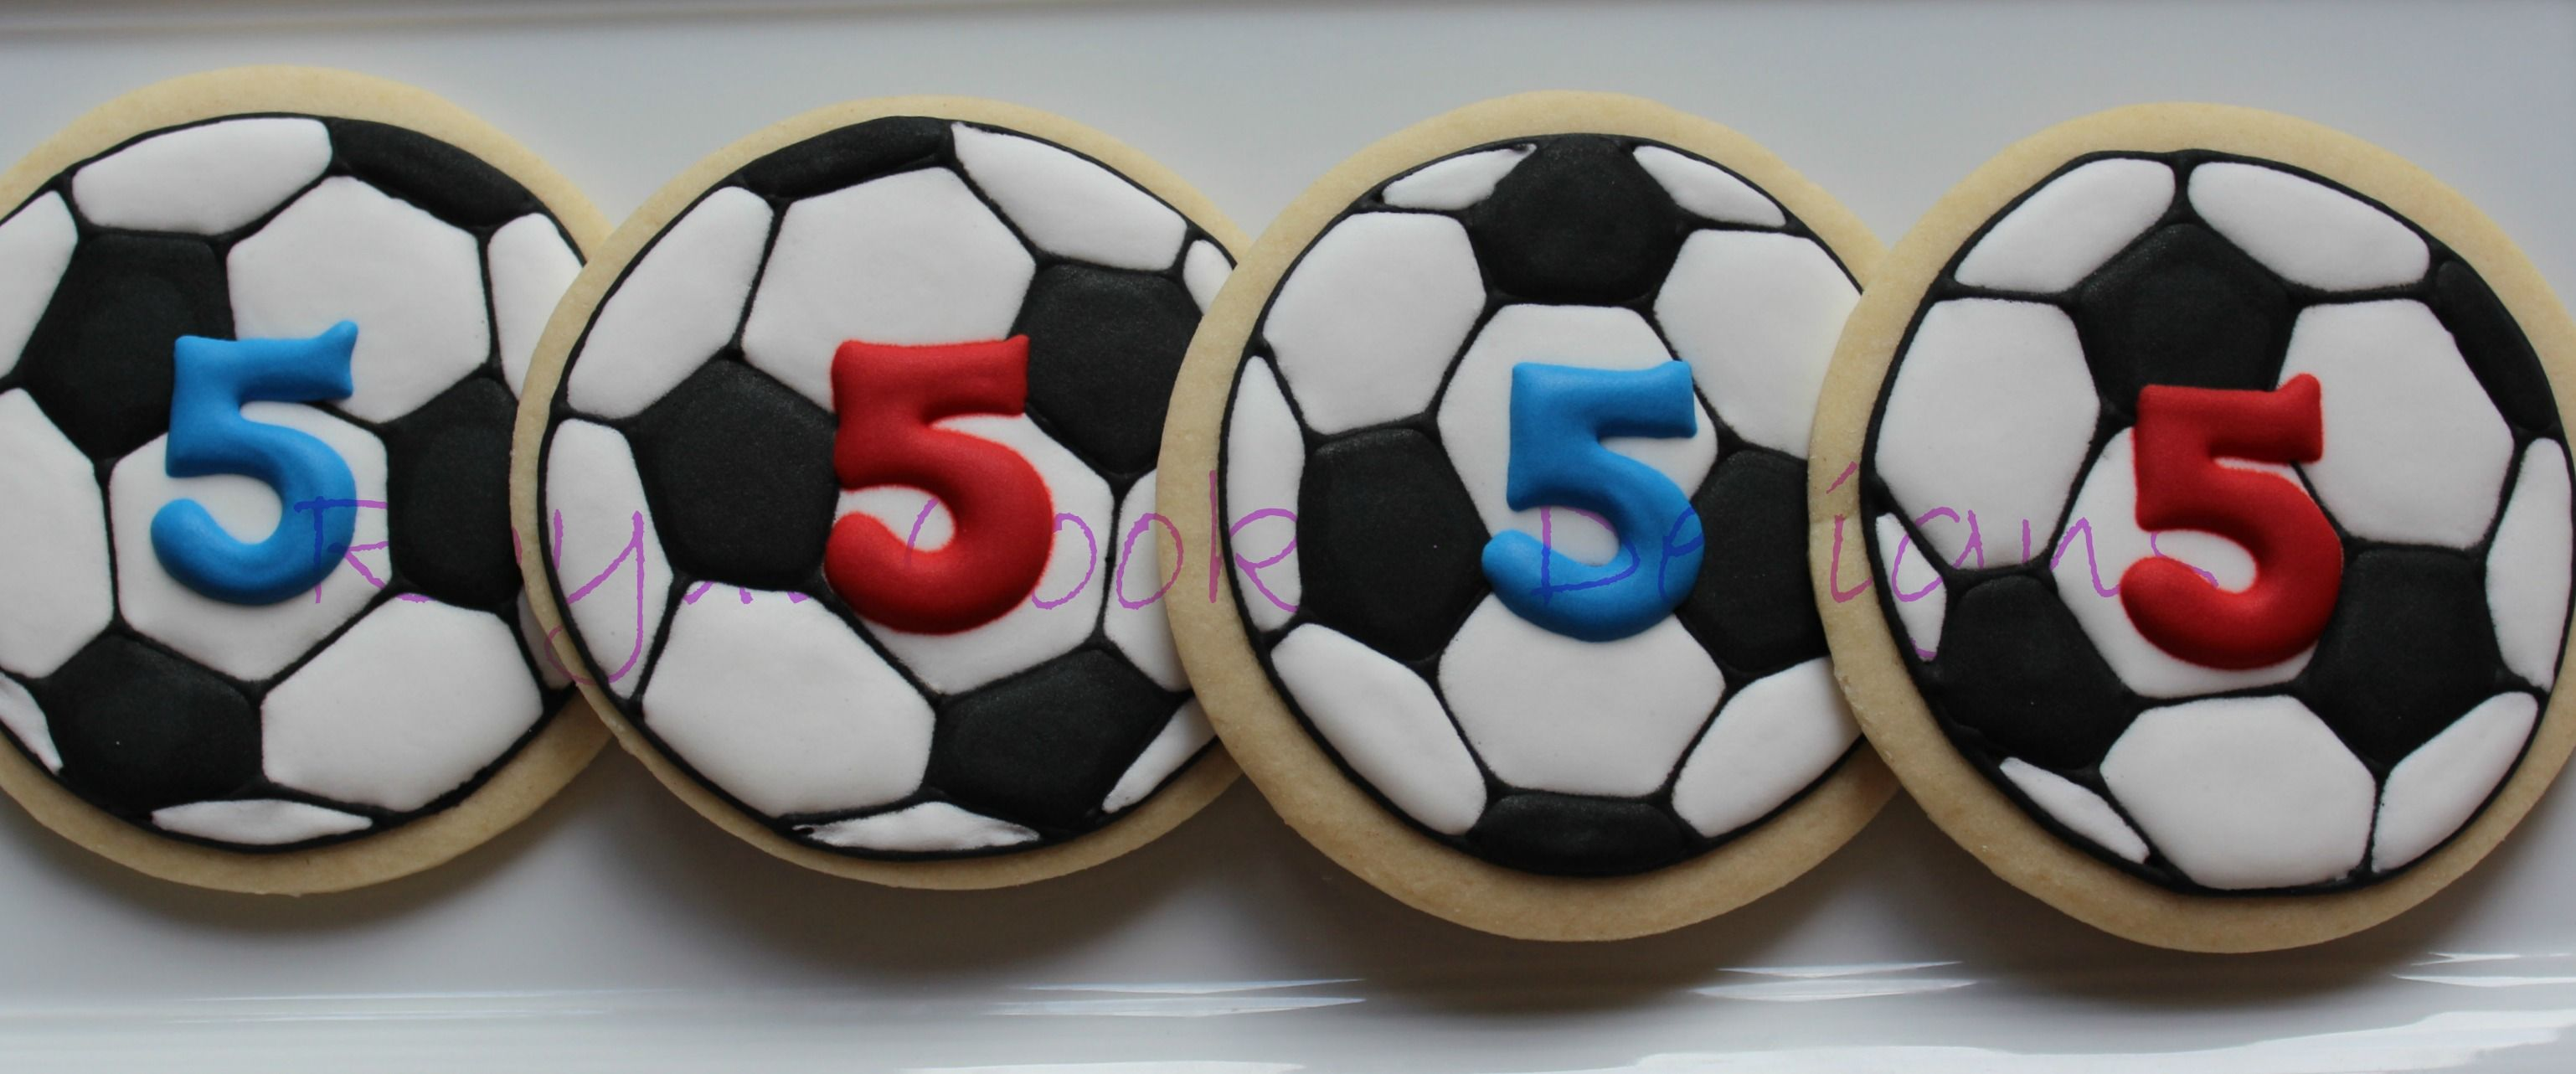 Birthday favors of soccer balls for twin 5 year old boys